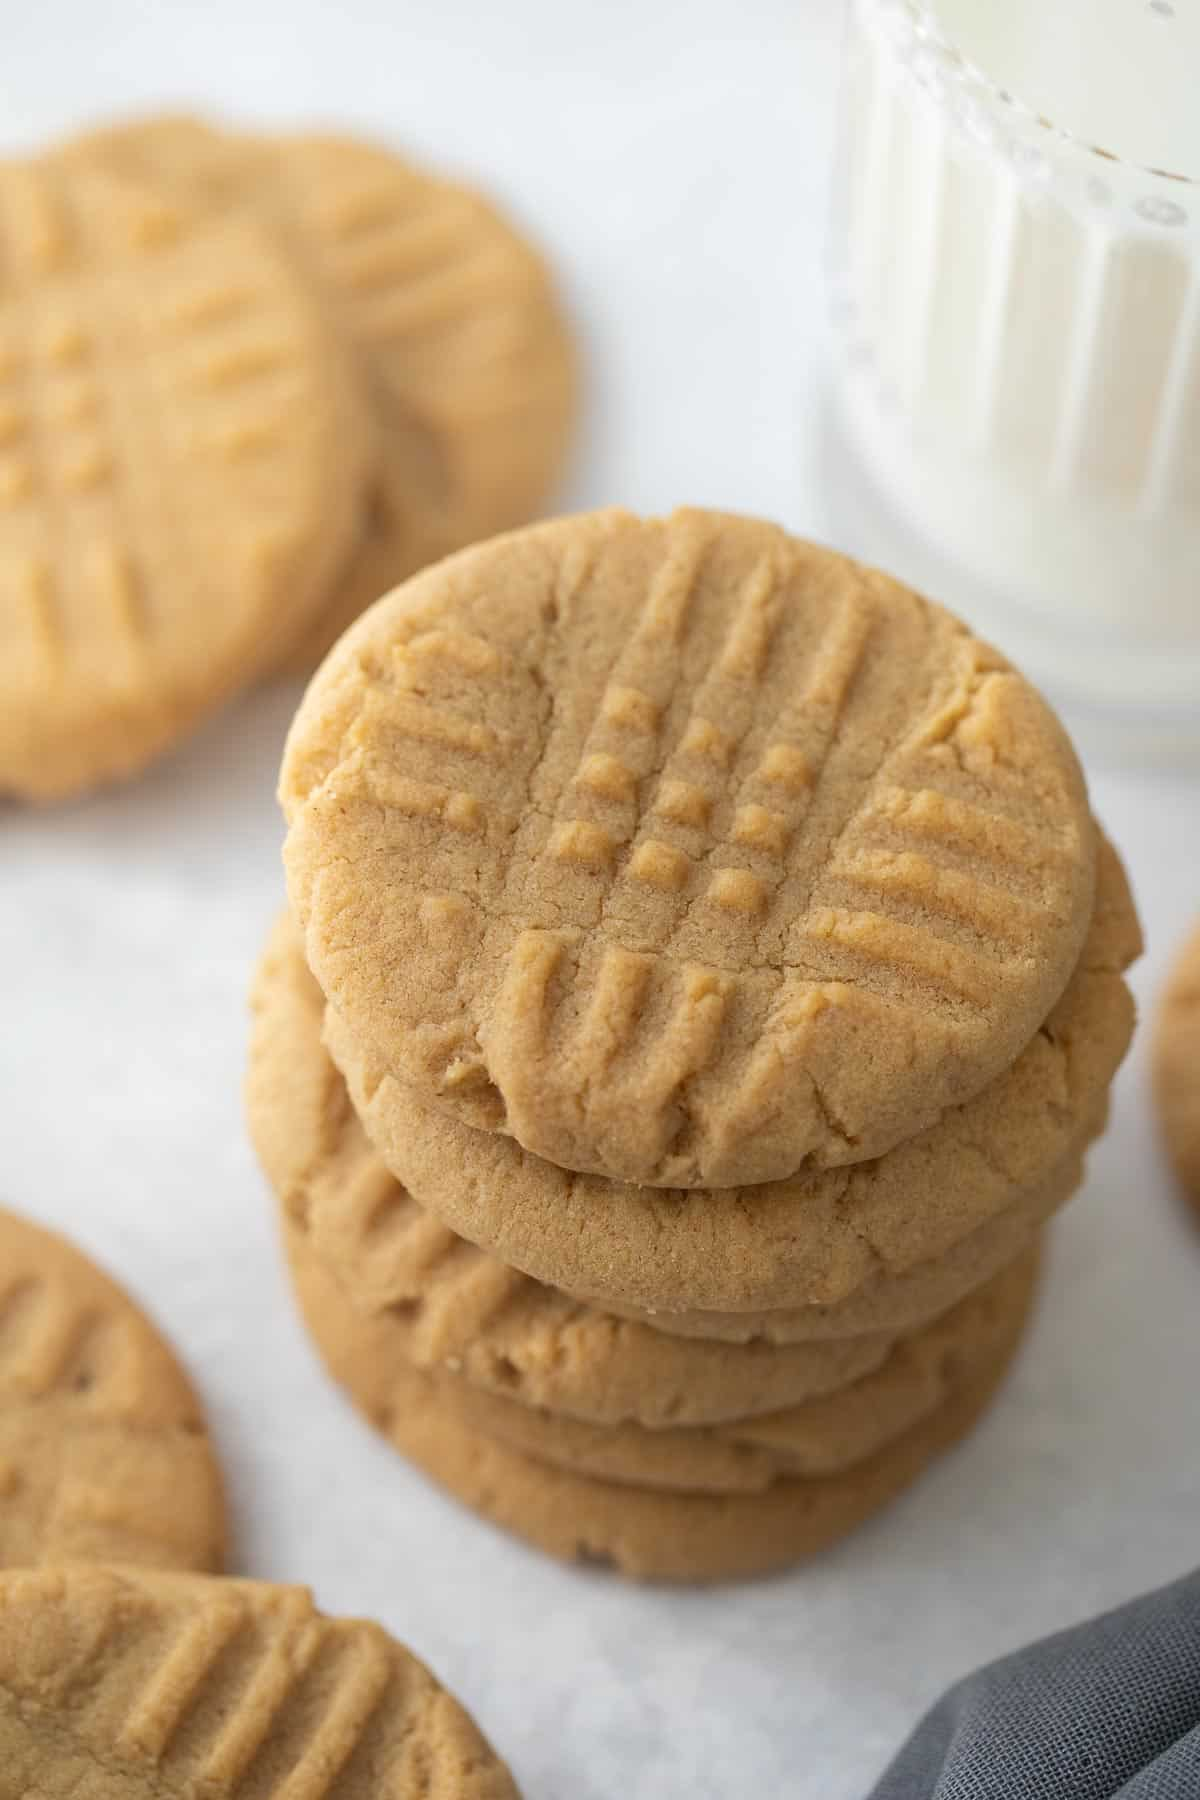 cookies stacked on top of each other on gray background with napkin and glass of milk